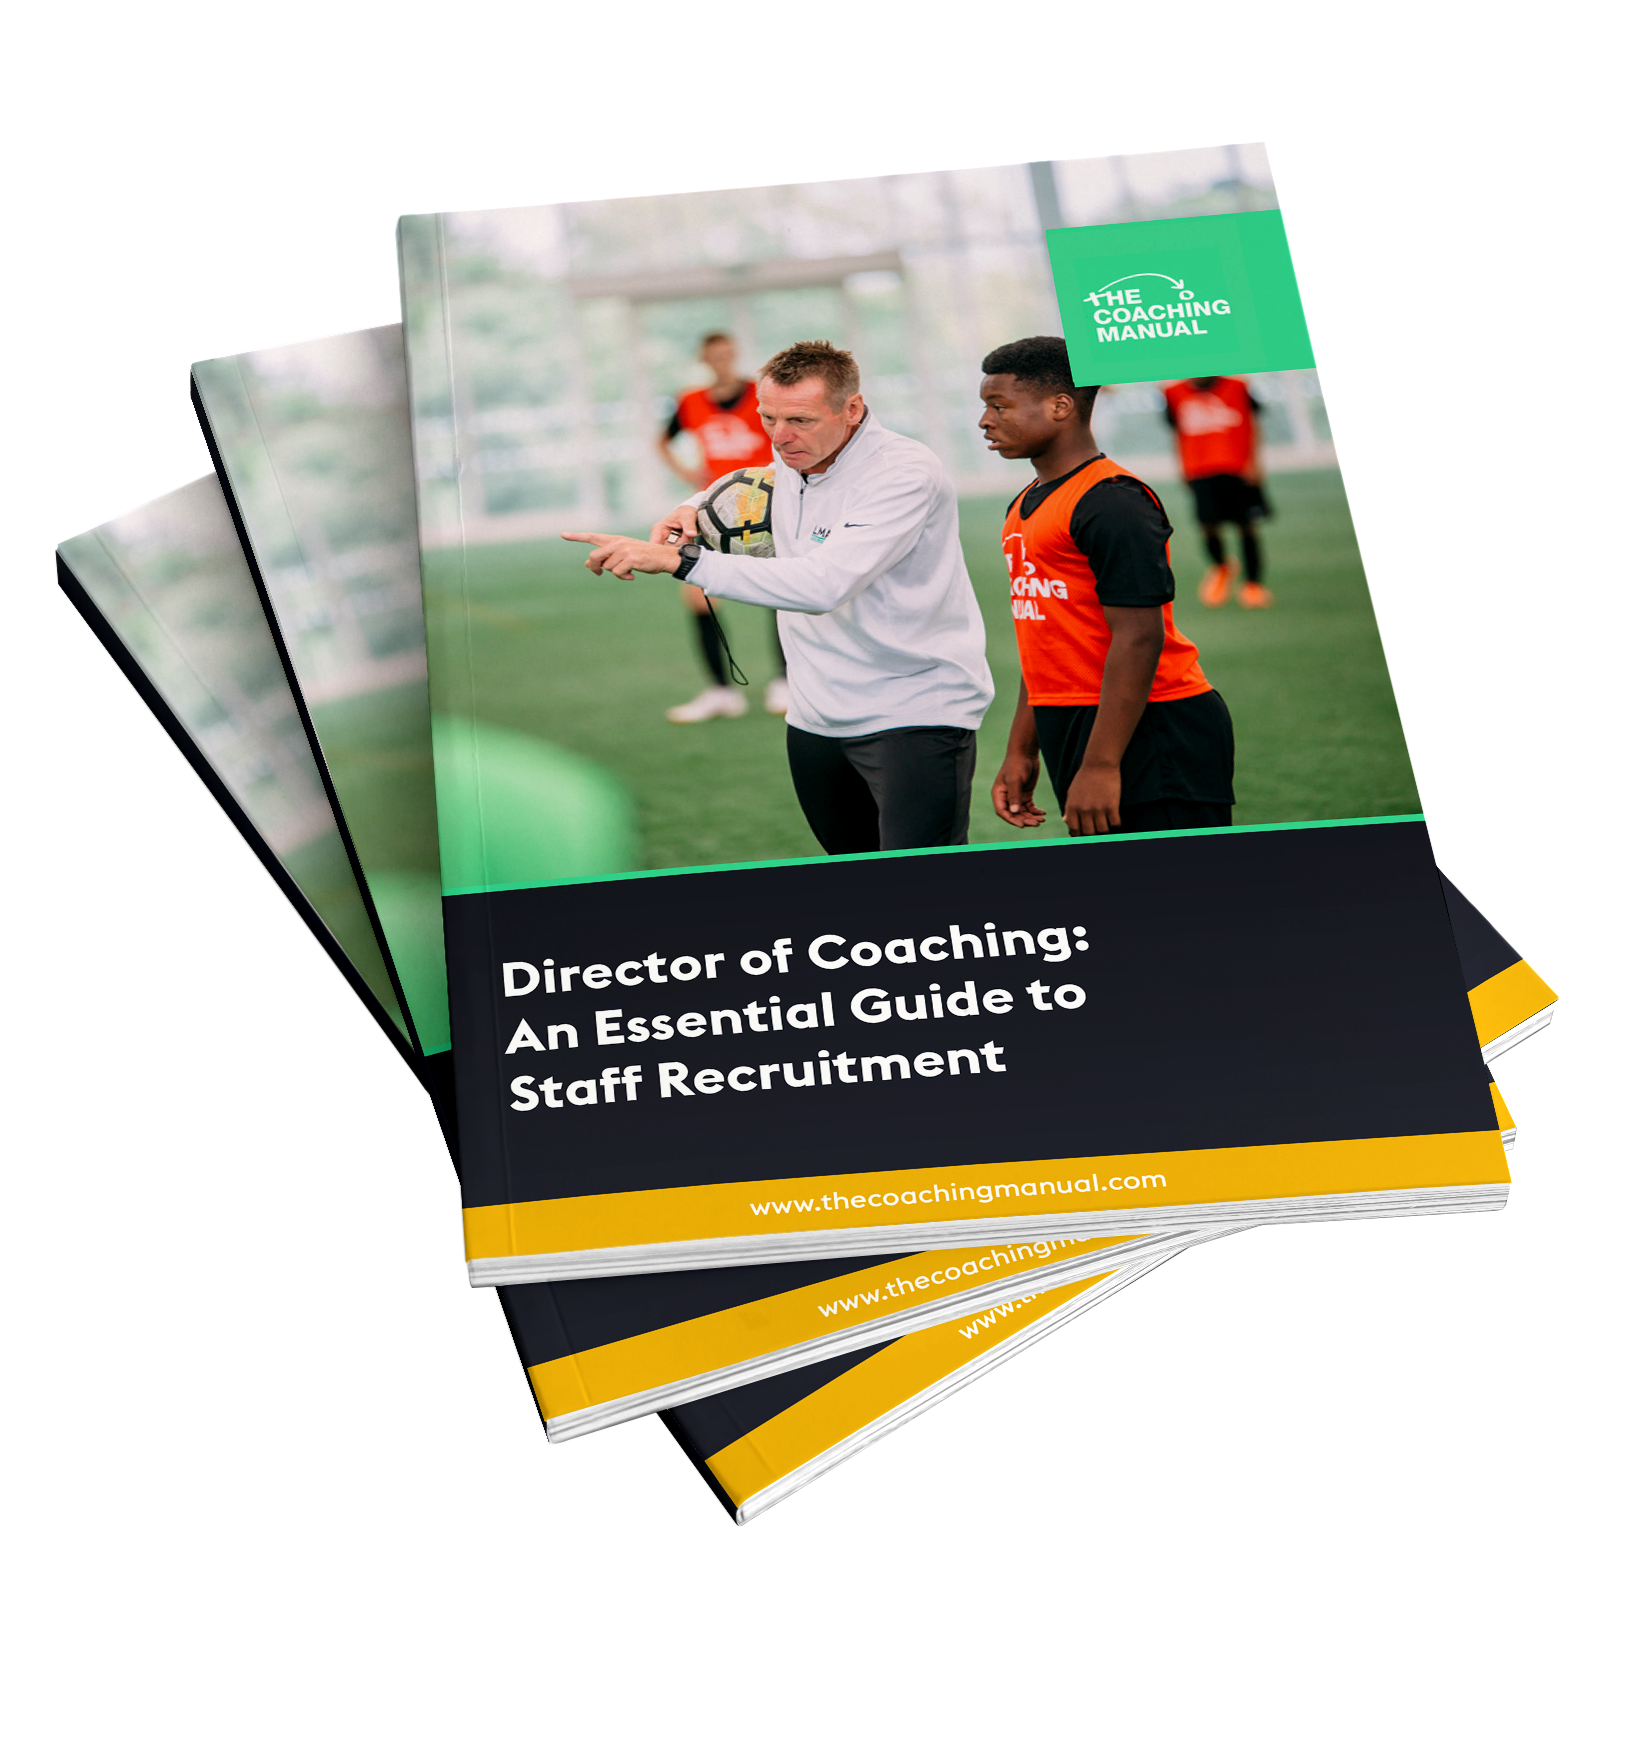 Director-of-Coaching-An-Essential-Guide-to-Staff-Recruitment